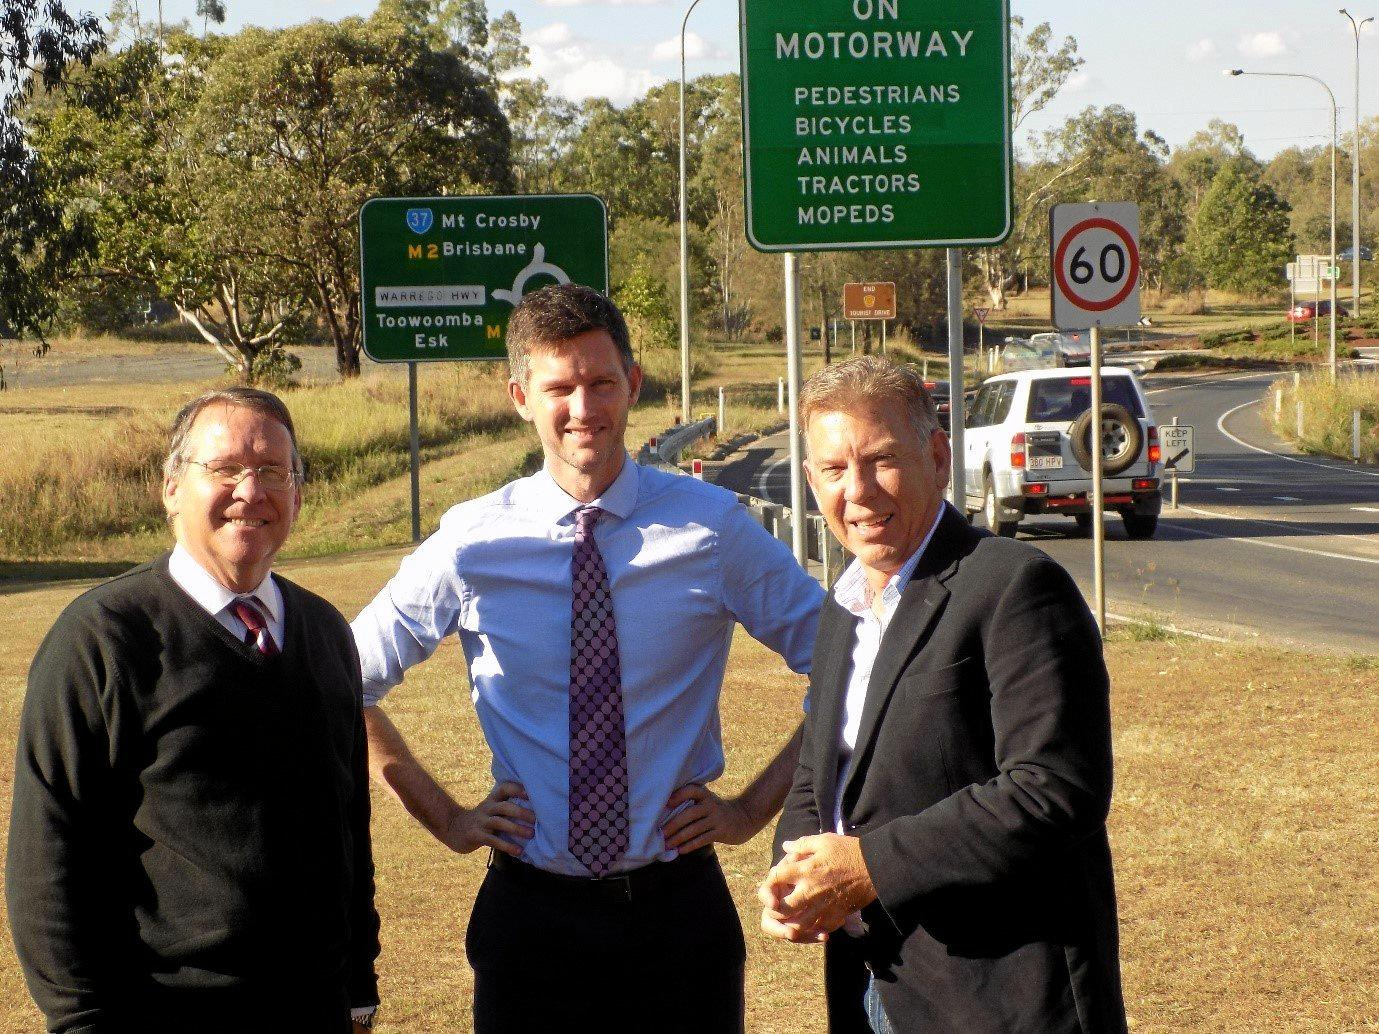 Jim Madden MP with Minister for Main Roads, Road Safety, and Ports Mark Bailey MP and Ipswich City Councillor Cr Wayne Wendt (Division 5) at the Mt Crosby Road/Warrego Highway Interchange.